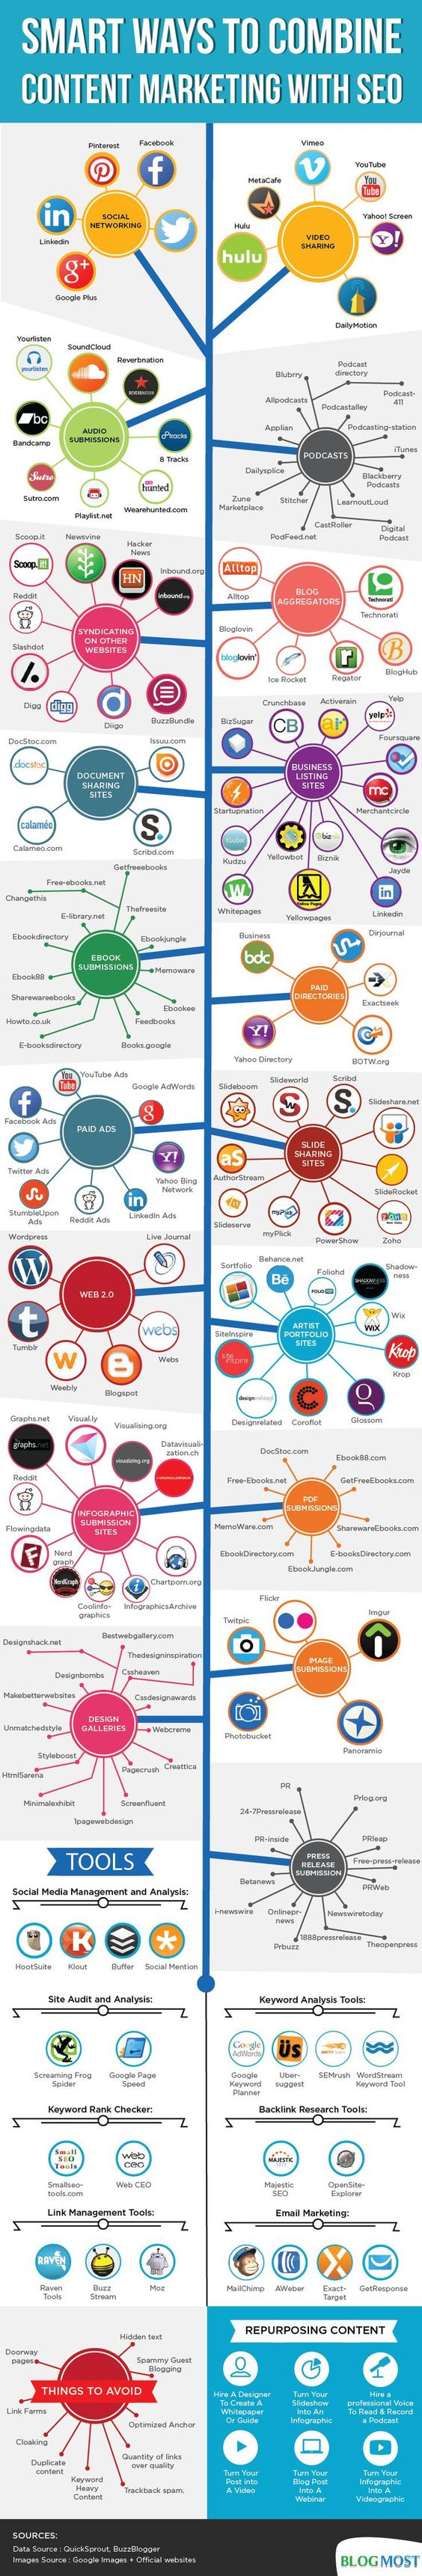 #Infographic on some smart ways to combine content marketing with search engine optimization available at Webmag.co   Digital Resources for Net Professionals from #WebsiteMagazine